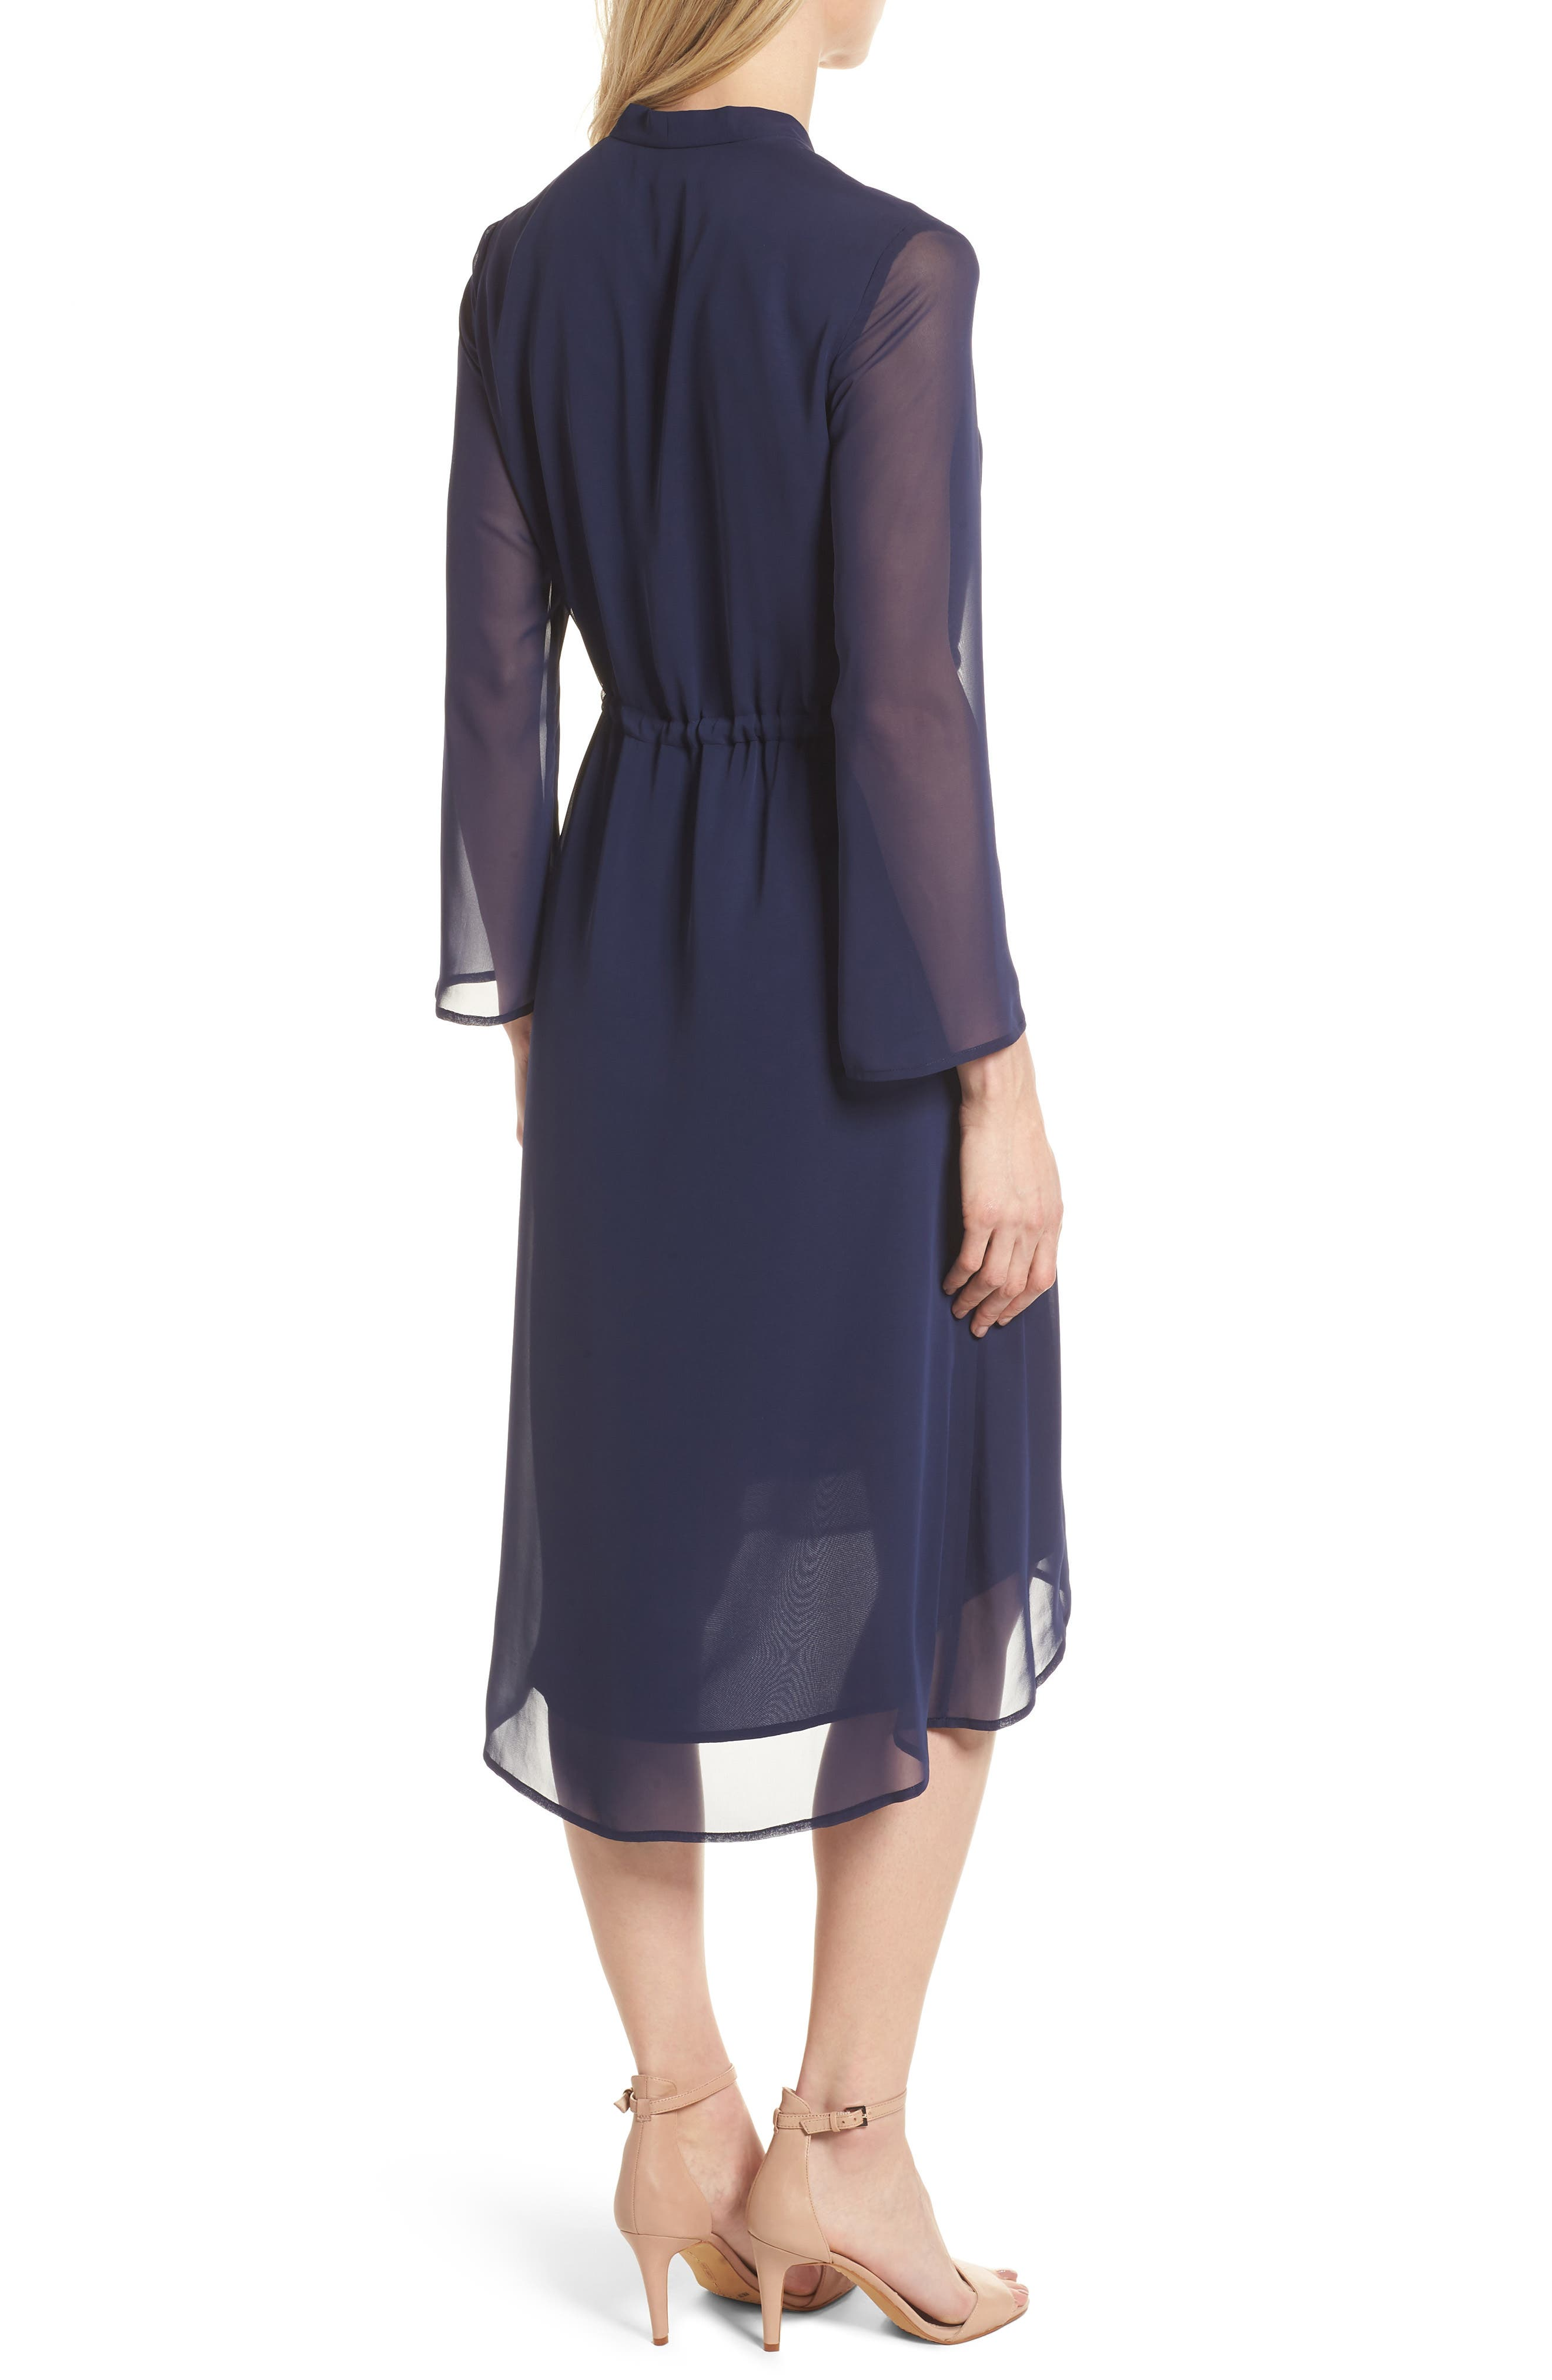 Sheer Overlay Tie Dress,                             Alternate thumbnail 2, color,                             410